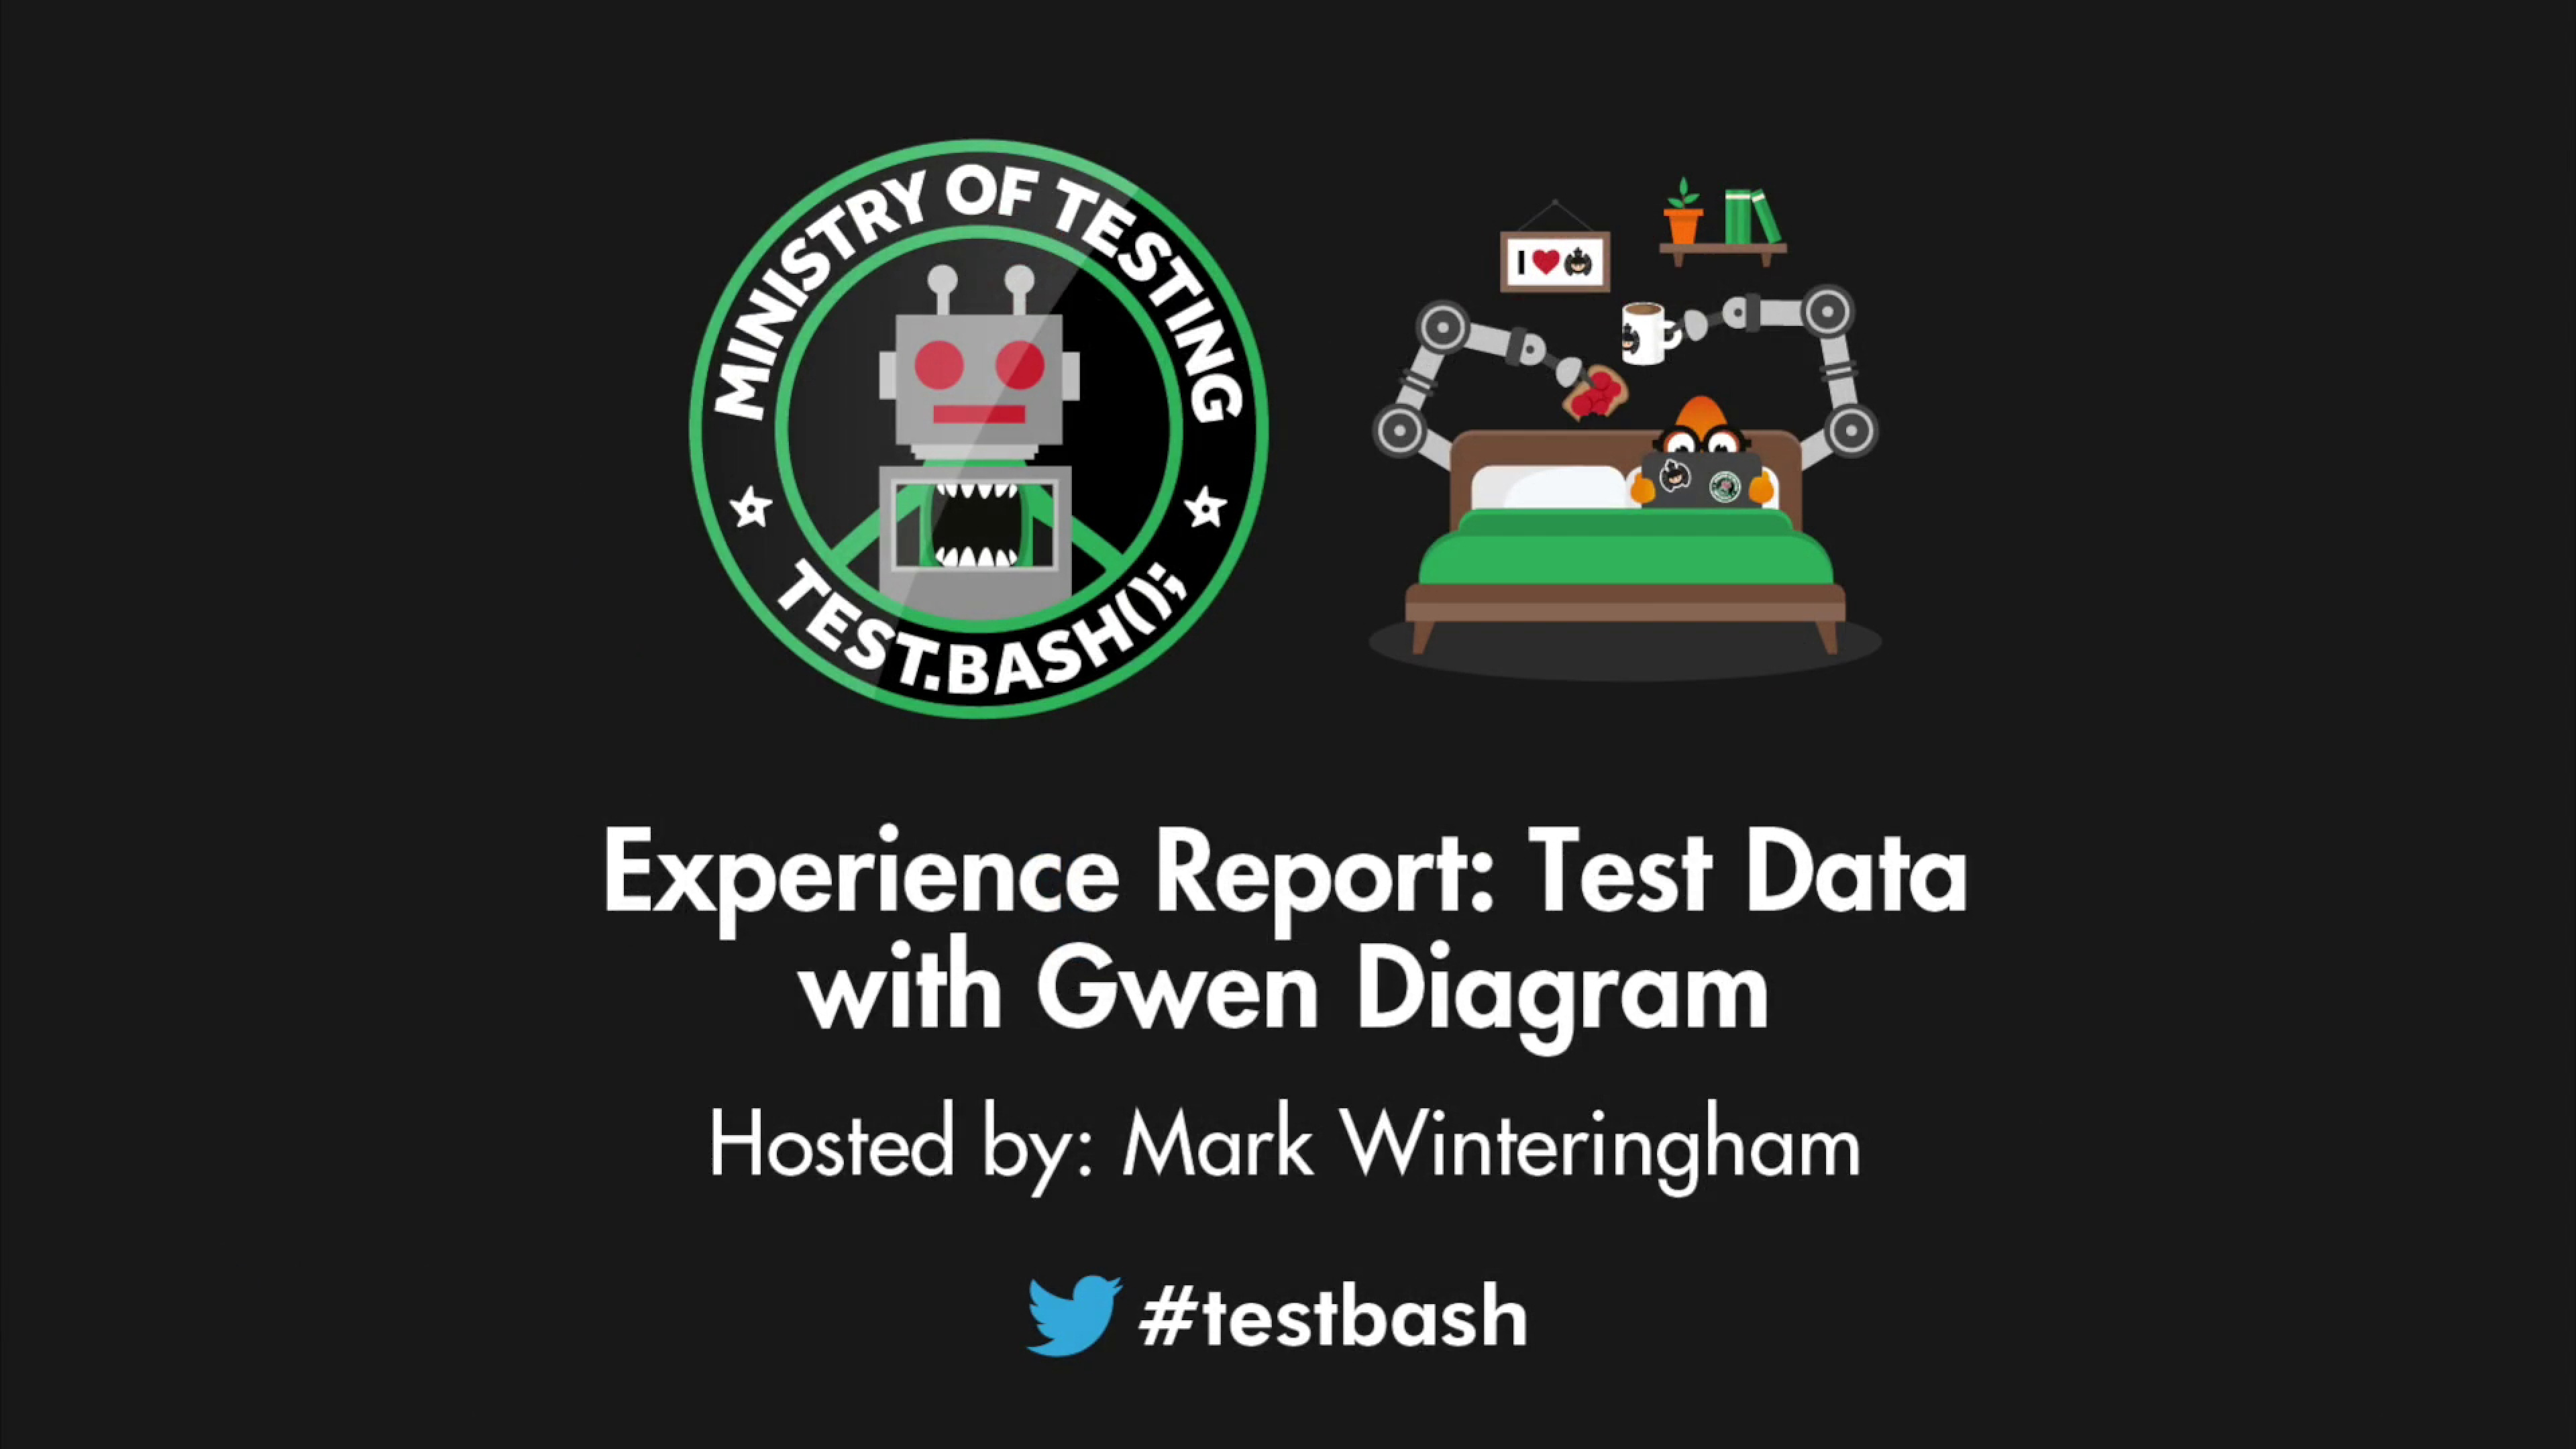 Experience Report: Data Testing - Gwen Diagram